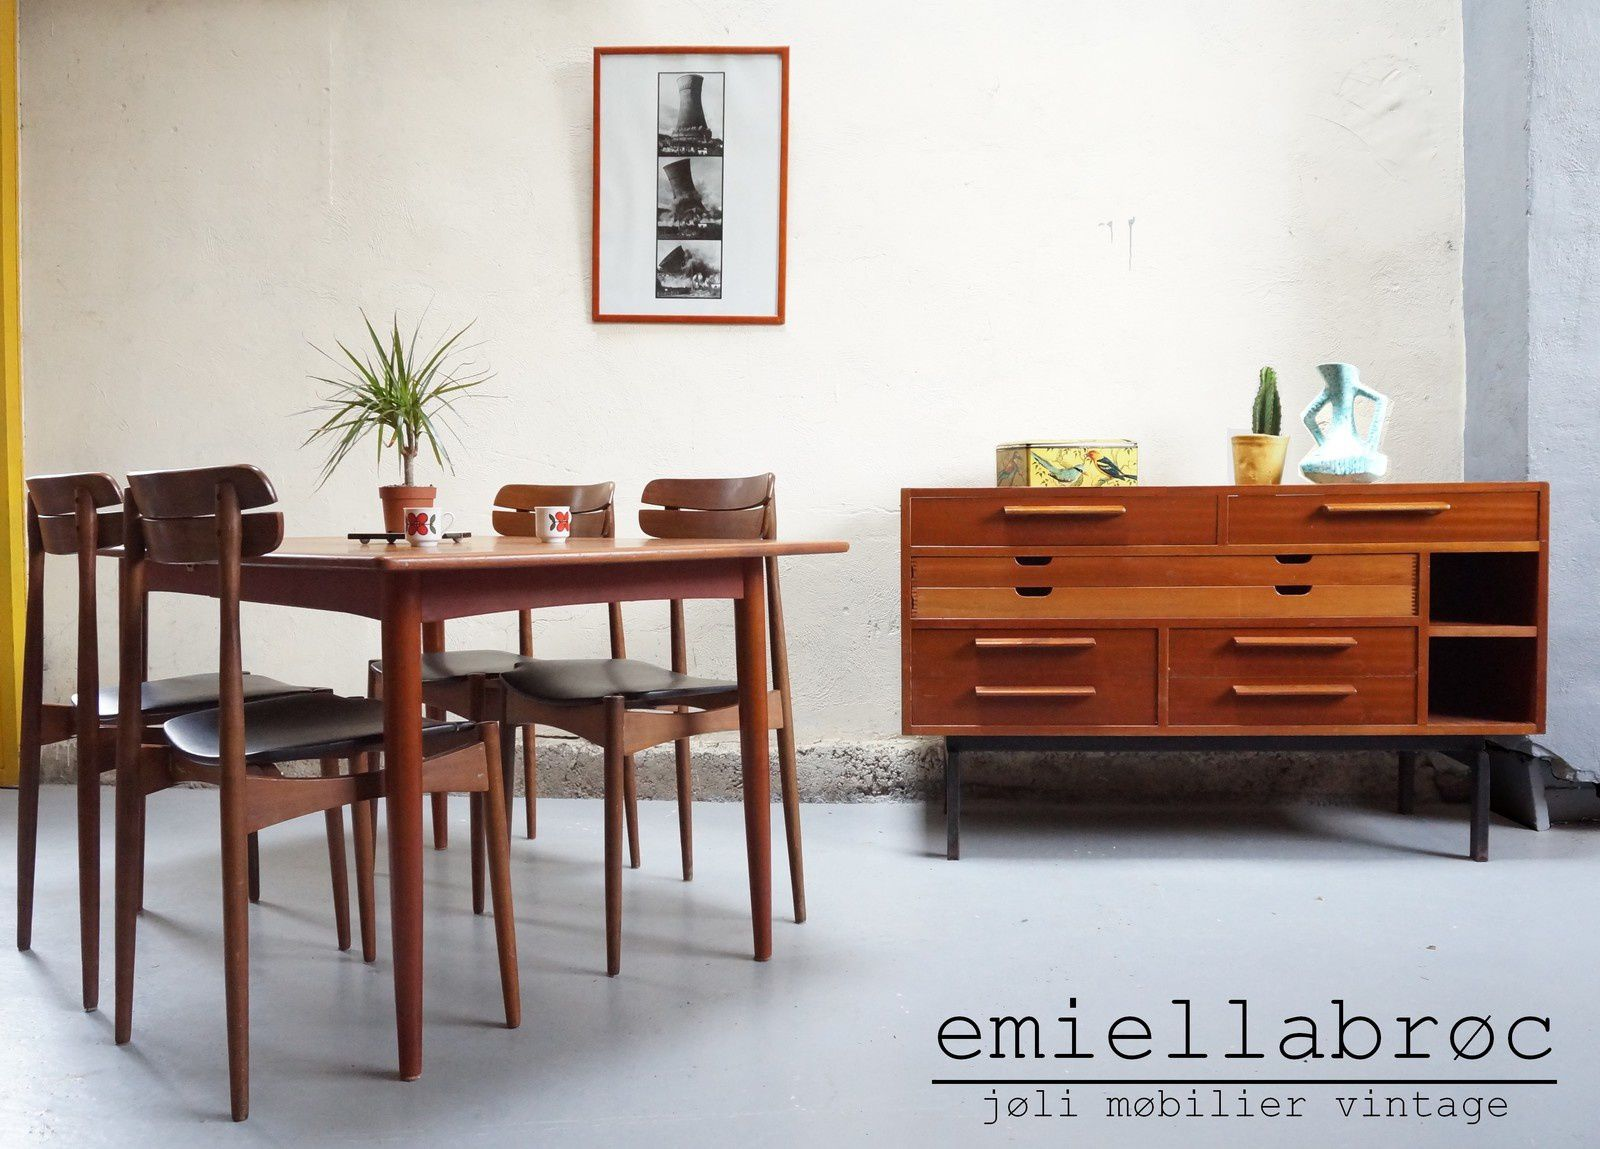 ambiance 5 emiellabroc vintage vente de mobilier vintage design scandinave ann es 50 60 70. Black Bedroom Furniture Sets. Home Design Ideas